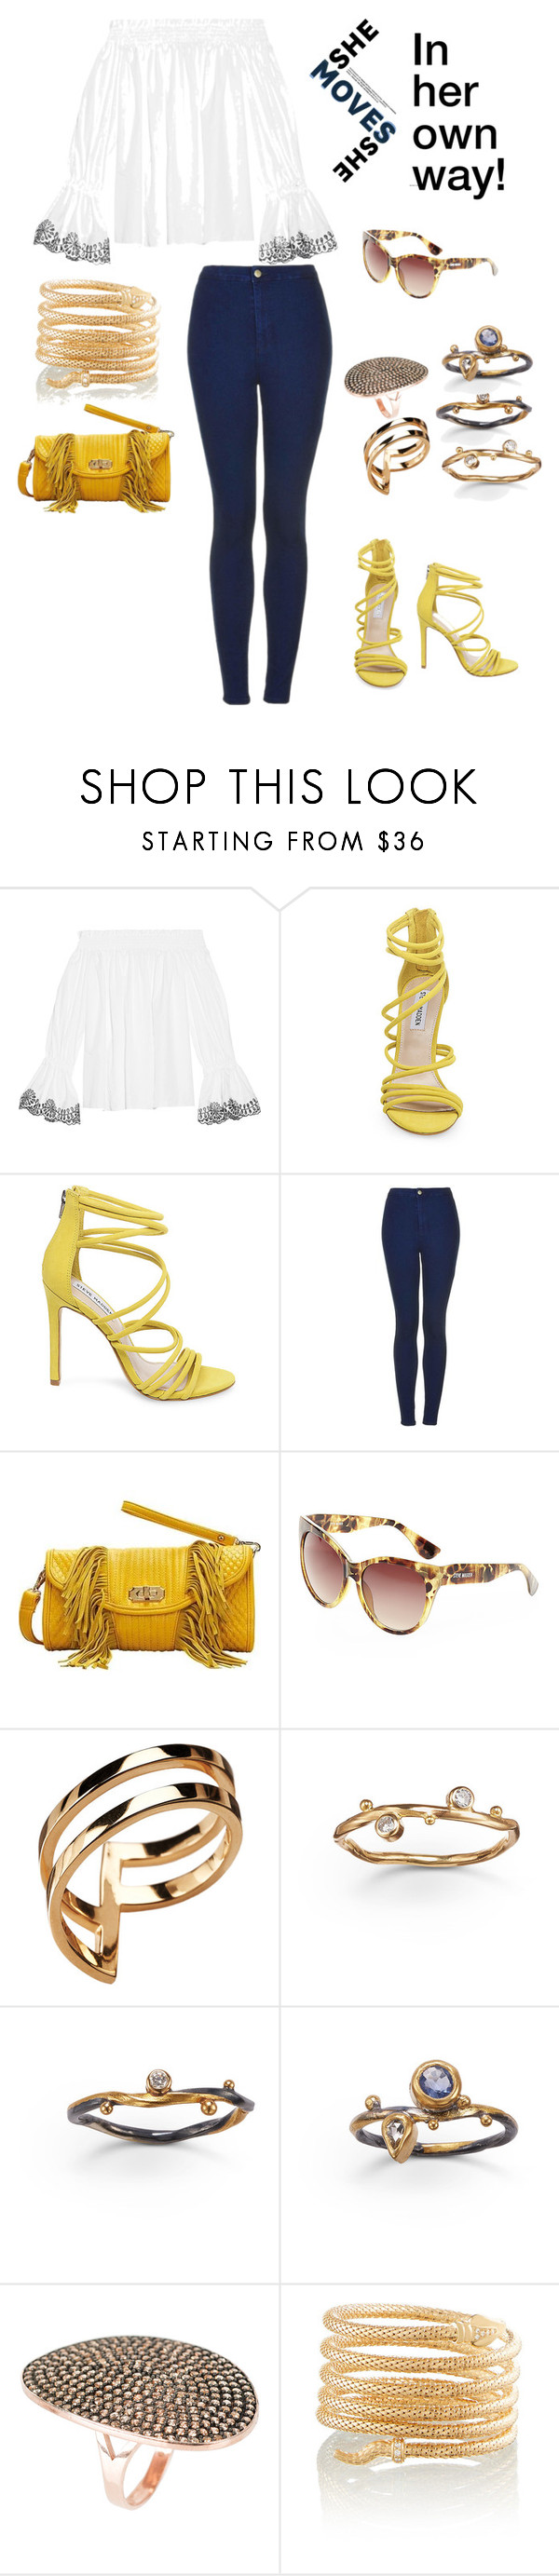 """Be Yourself"" by maryth230 on Polyvore featuring Alexander McQueen, Steve Madden, Topshop, Mellow World, Gold Philosophy, Latelita, Bensimon and mykindofstyle"